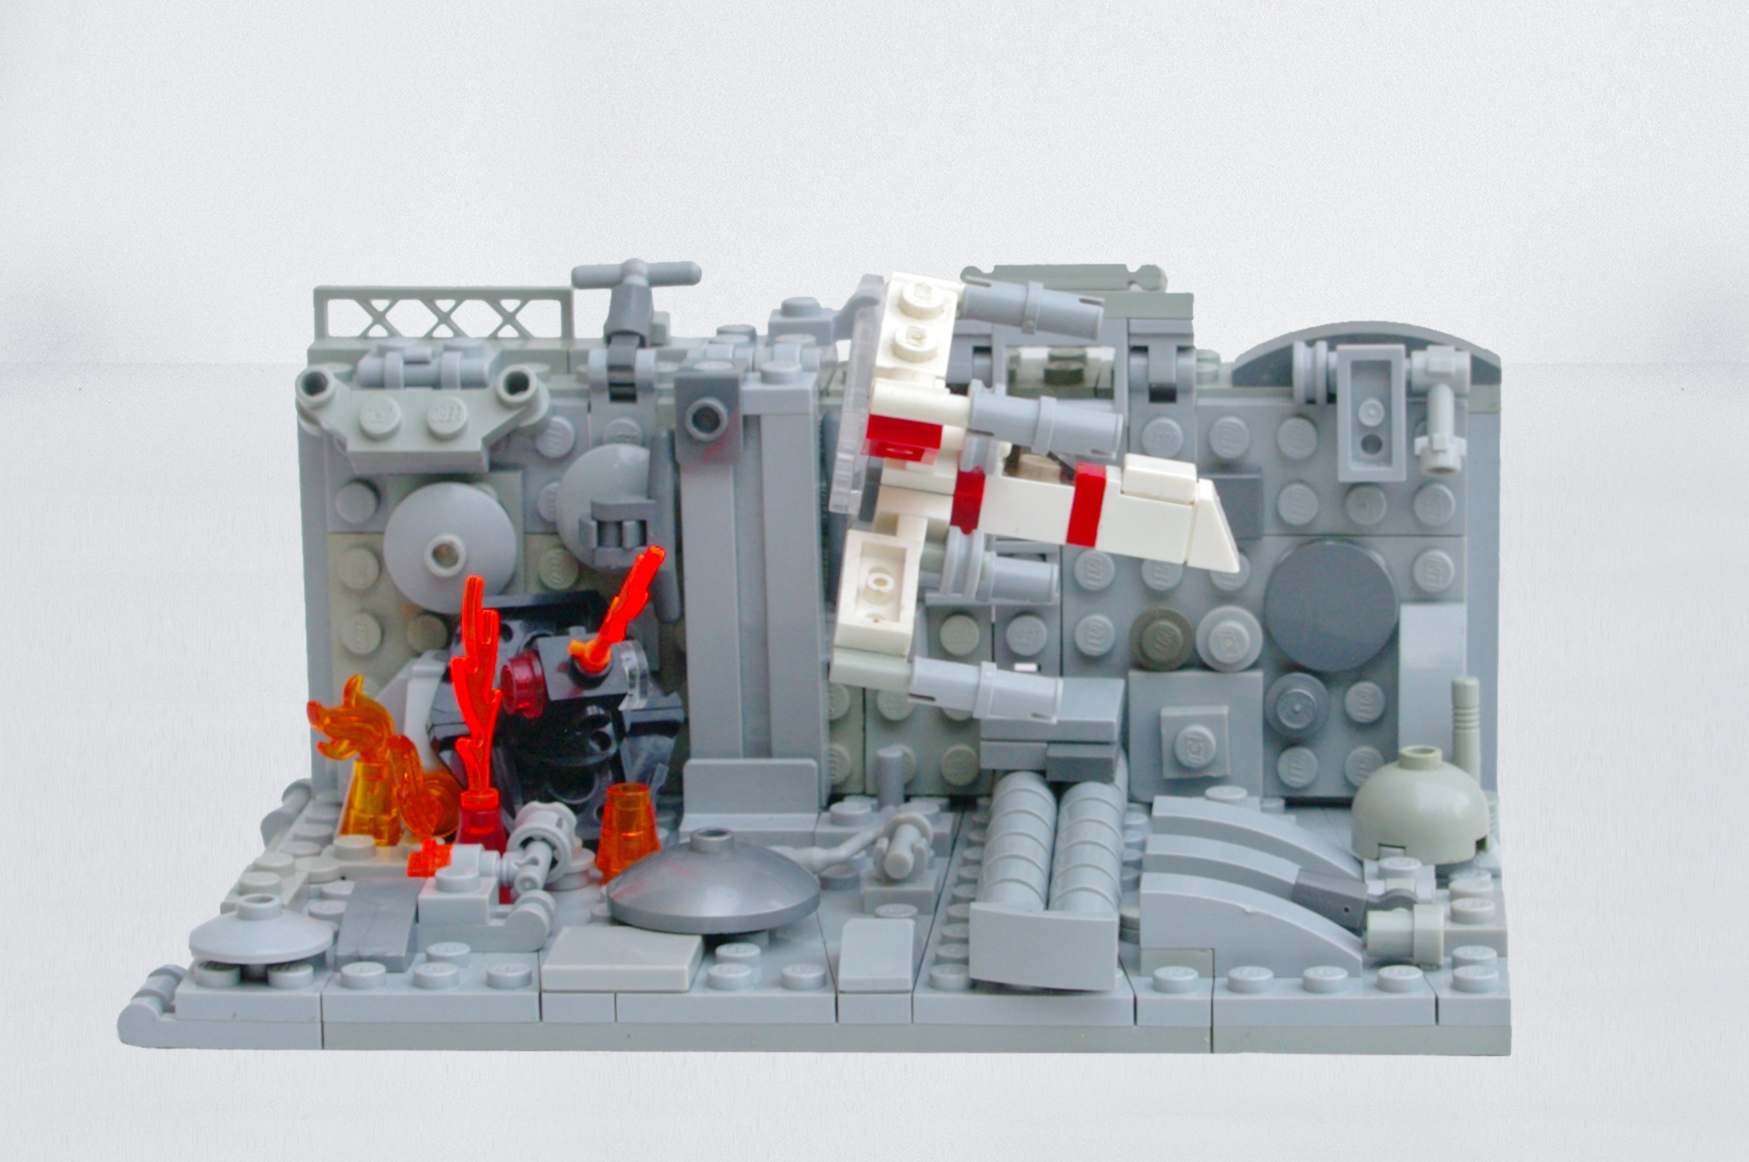 Concurs Microscale Movie Scenes – Creatia 5: Trench Run